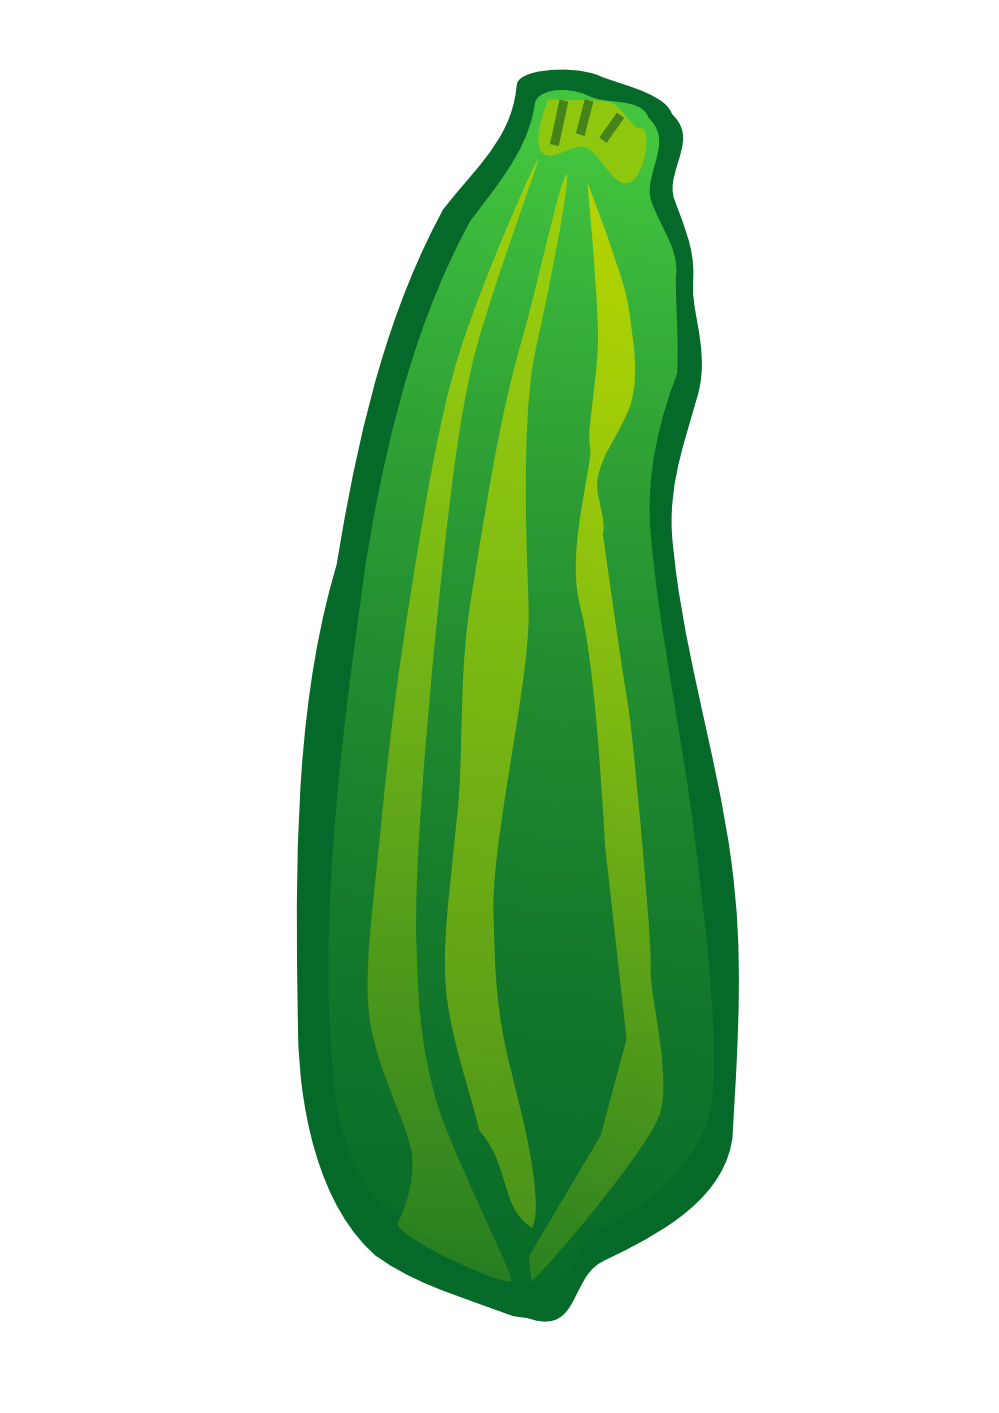 Pickle clipart animated, Pickle animated Transparent FREE.